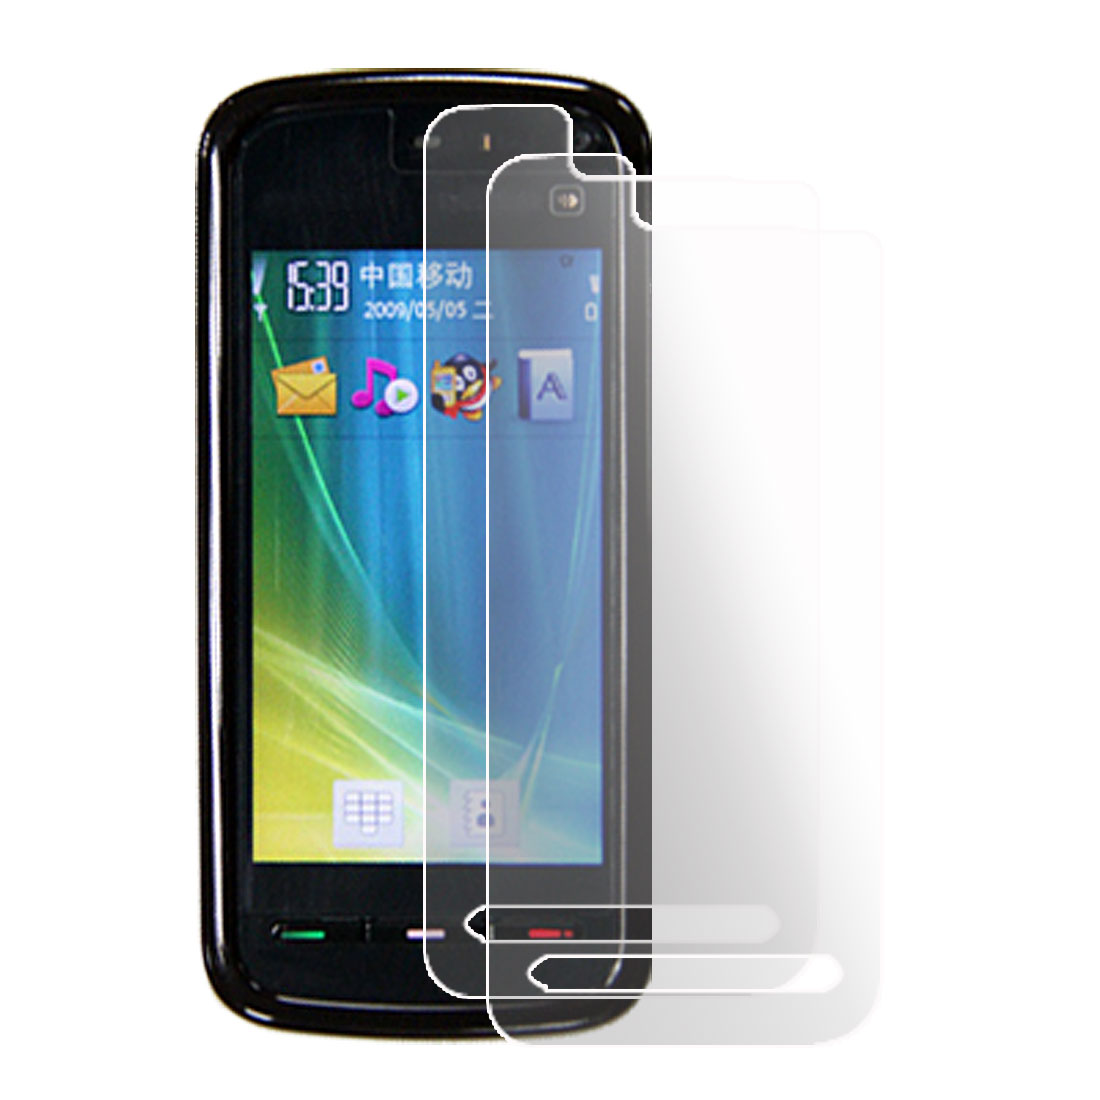 2 Pcs Clear Plastic Screen Protector Film for Nokia 5800